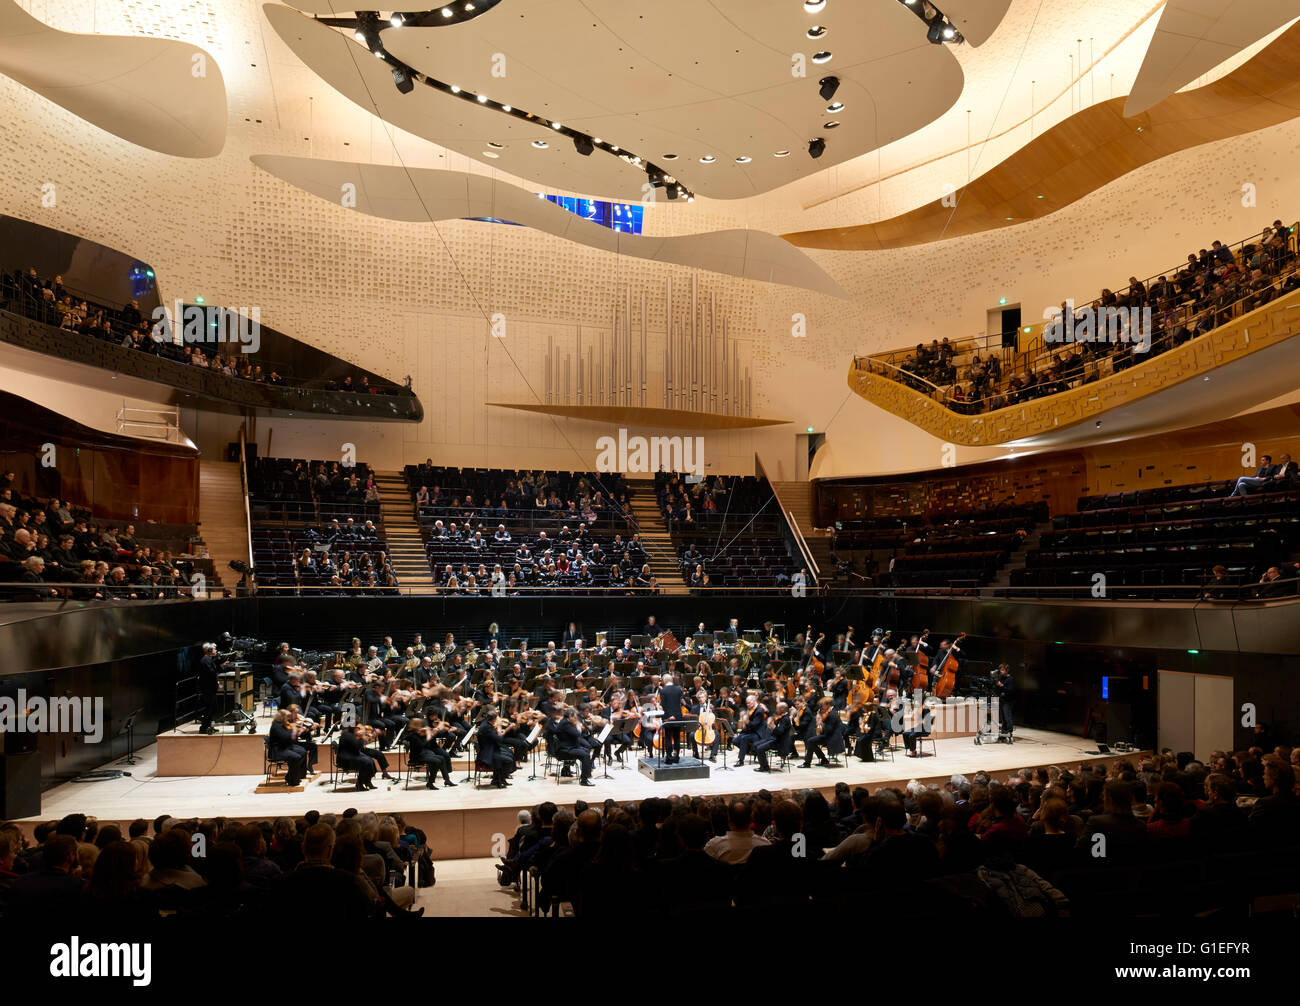 Philharmonie de Paris: Concert Hall. A rehearsal for the opening event with the Orchestre de Paris conducted by - Stock Image